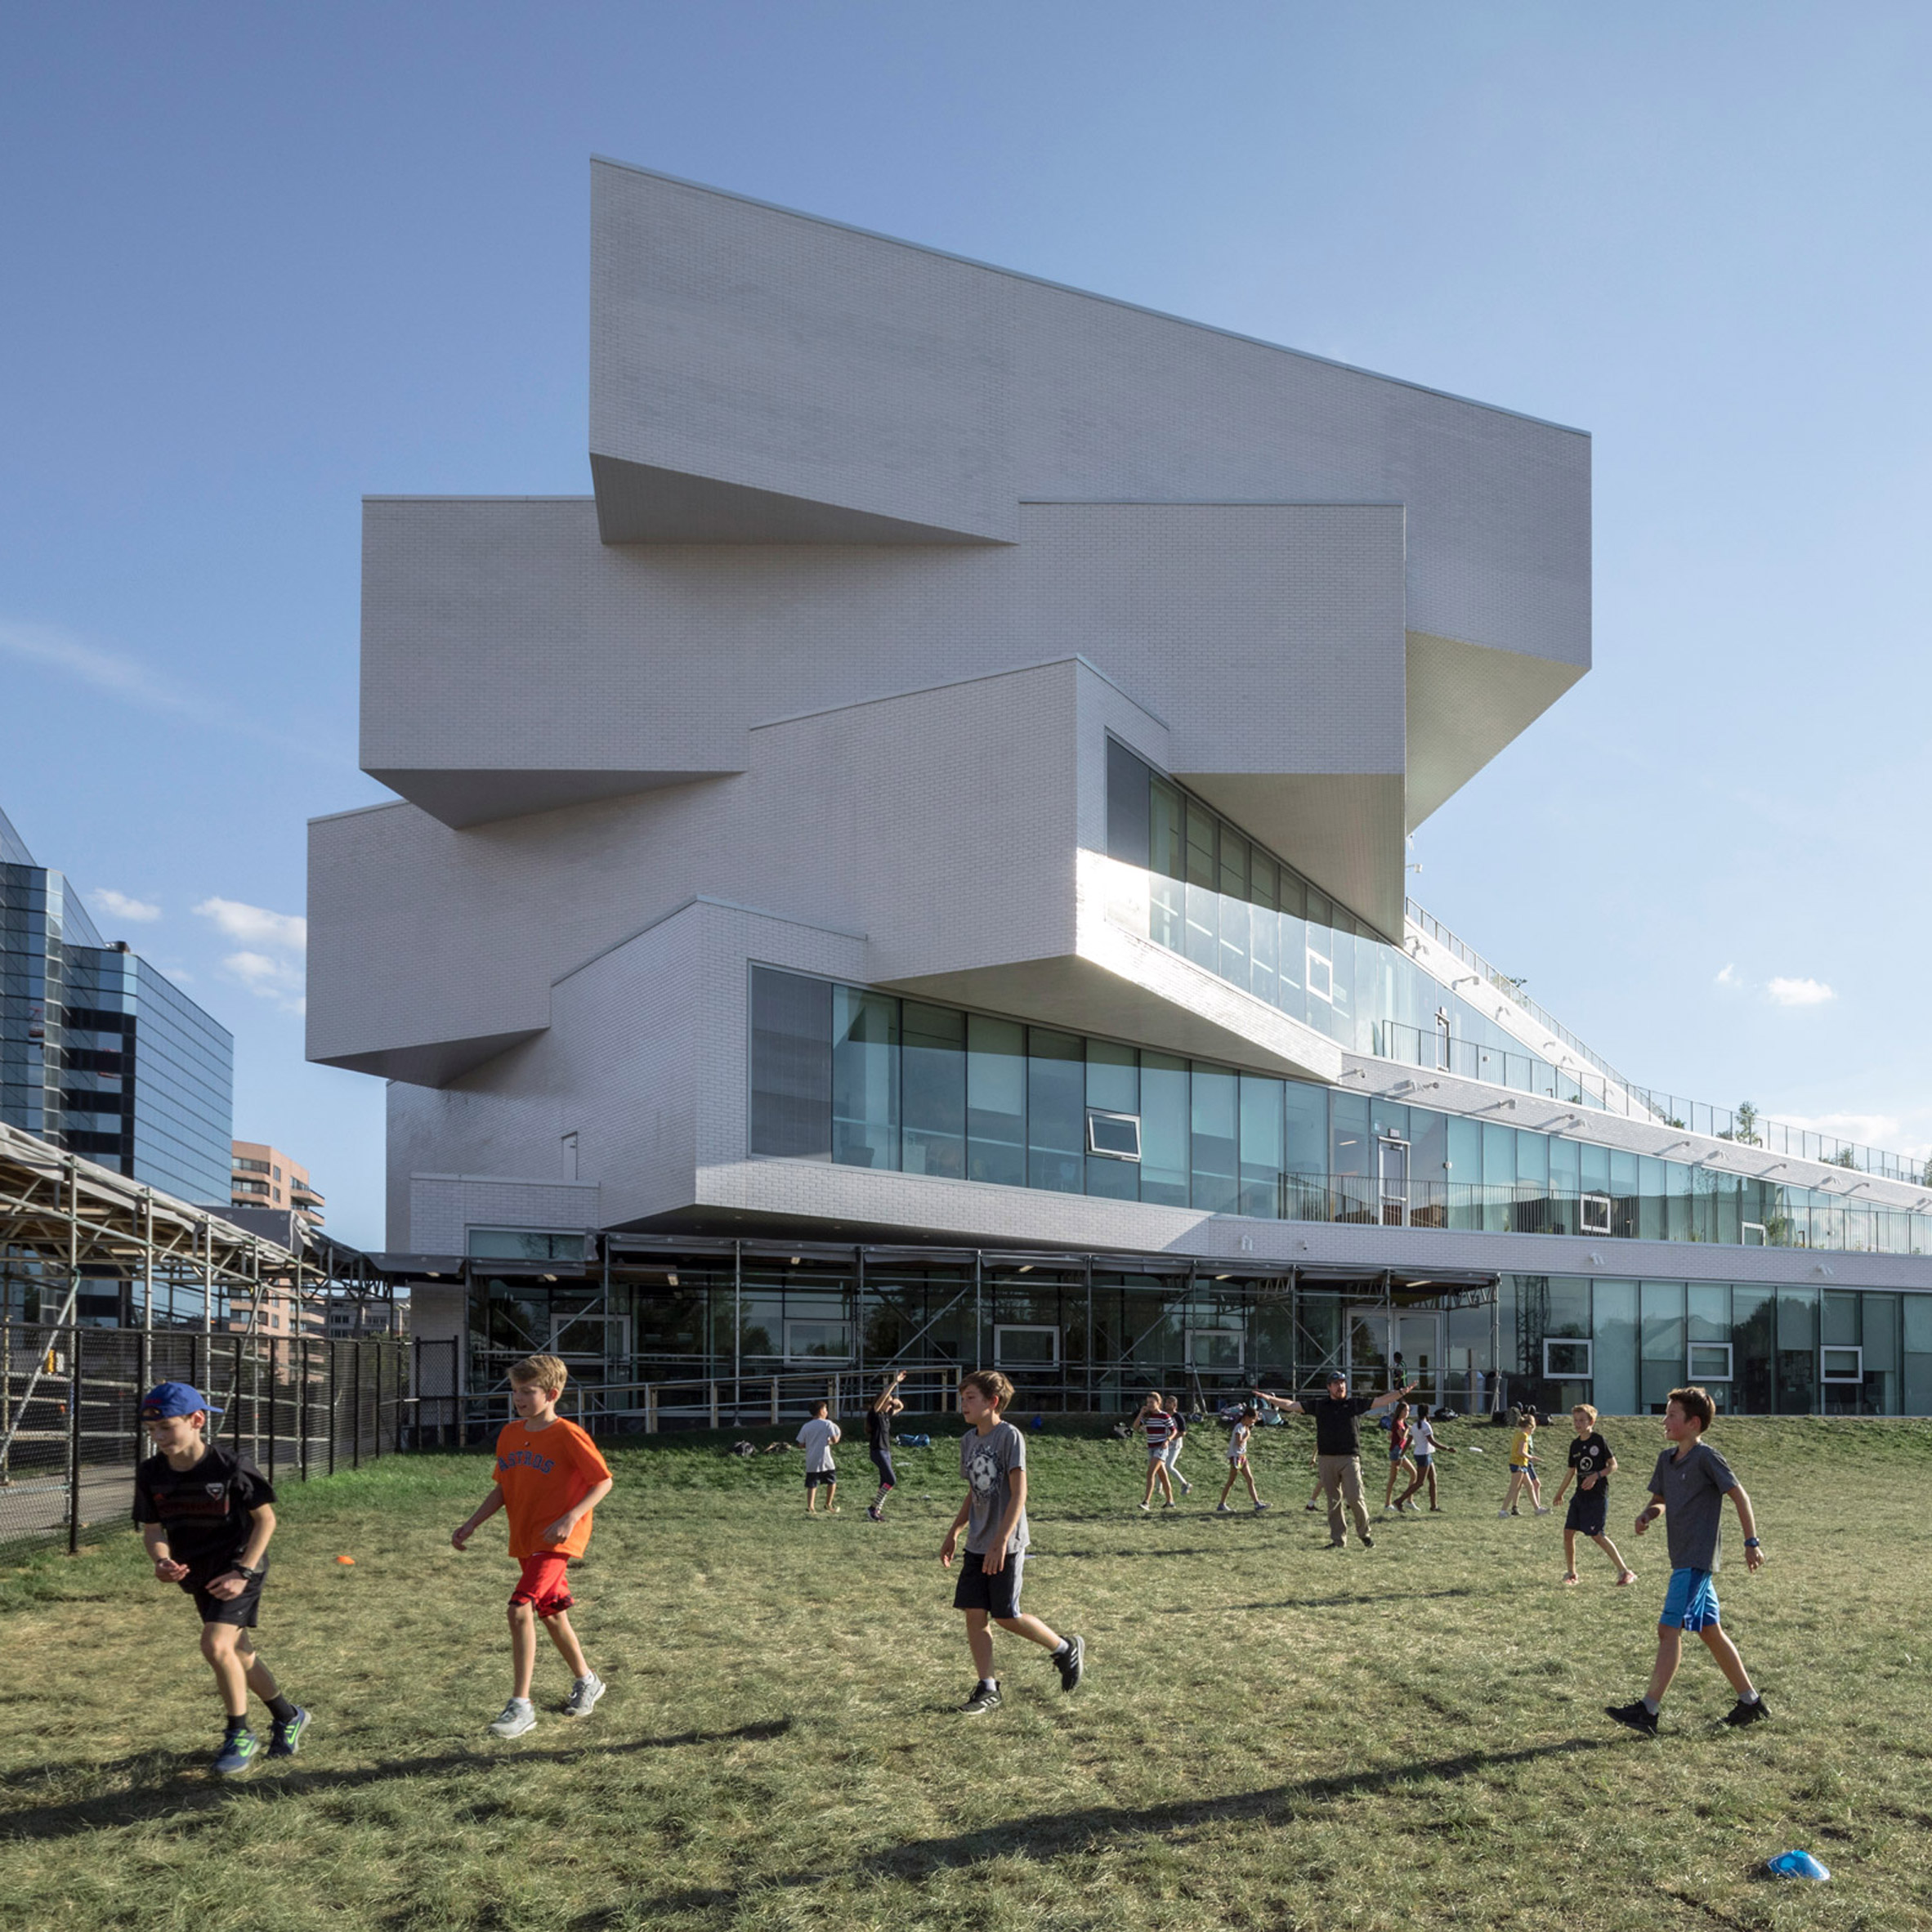 BIG designs twisting Virginia school The Heights